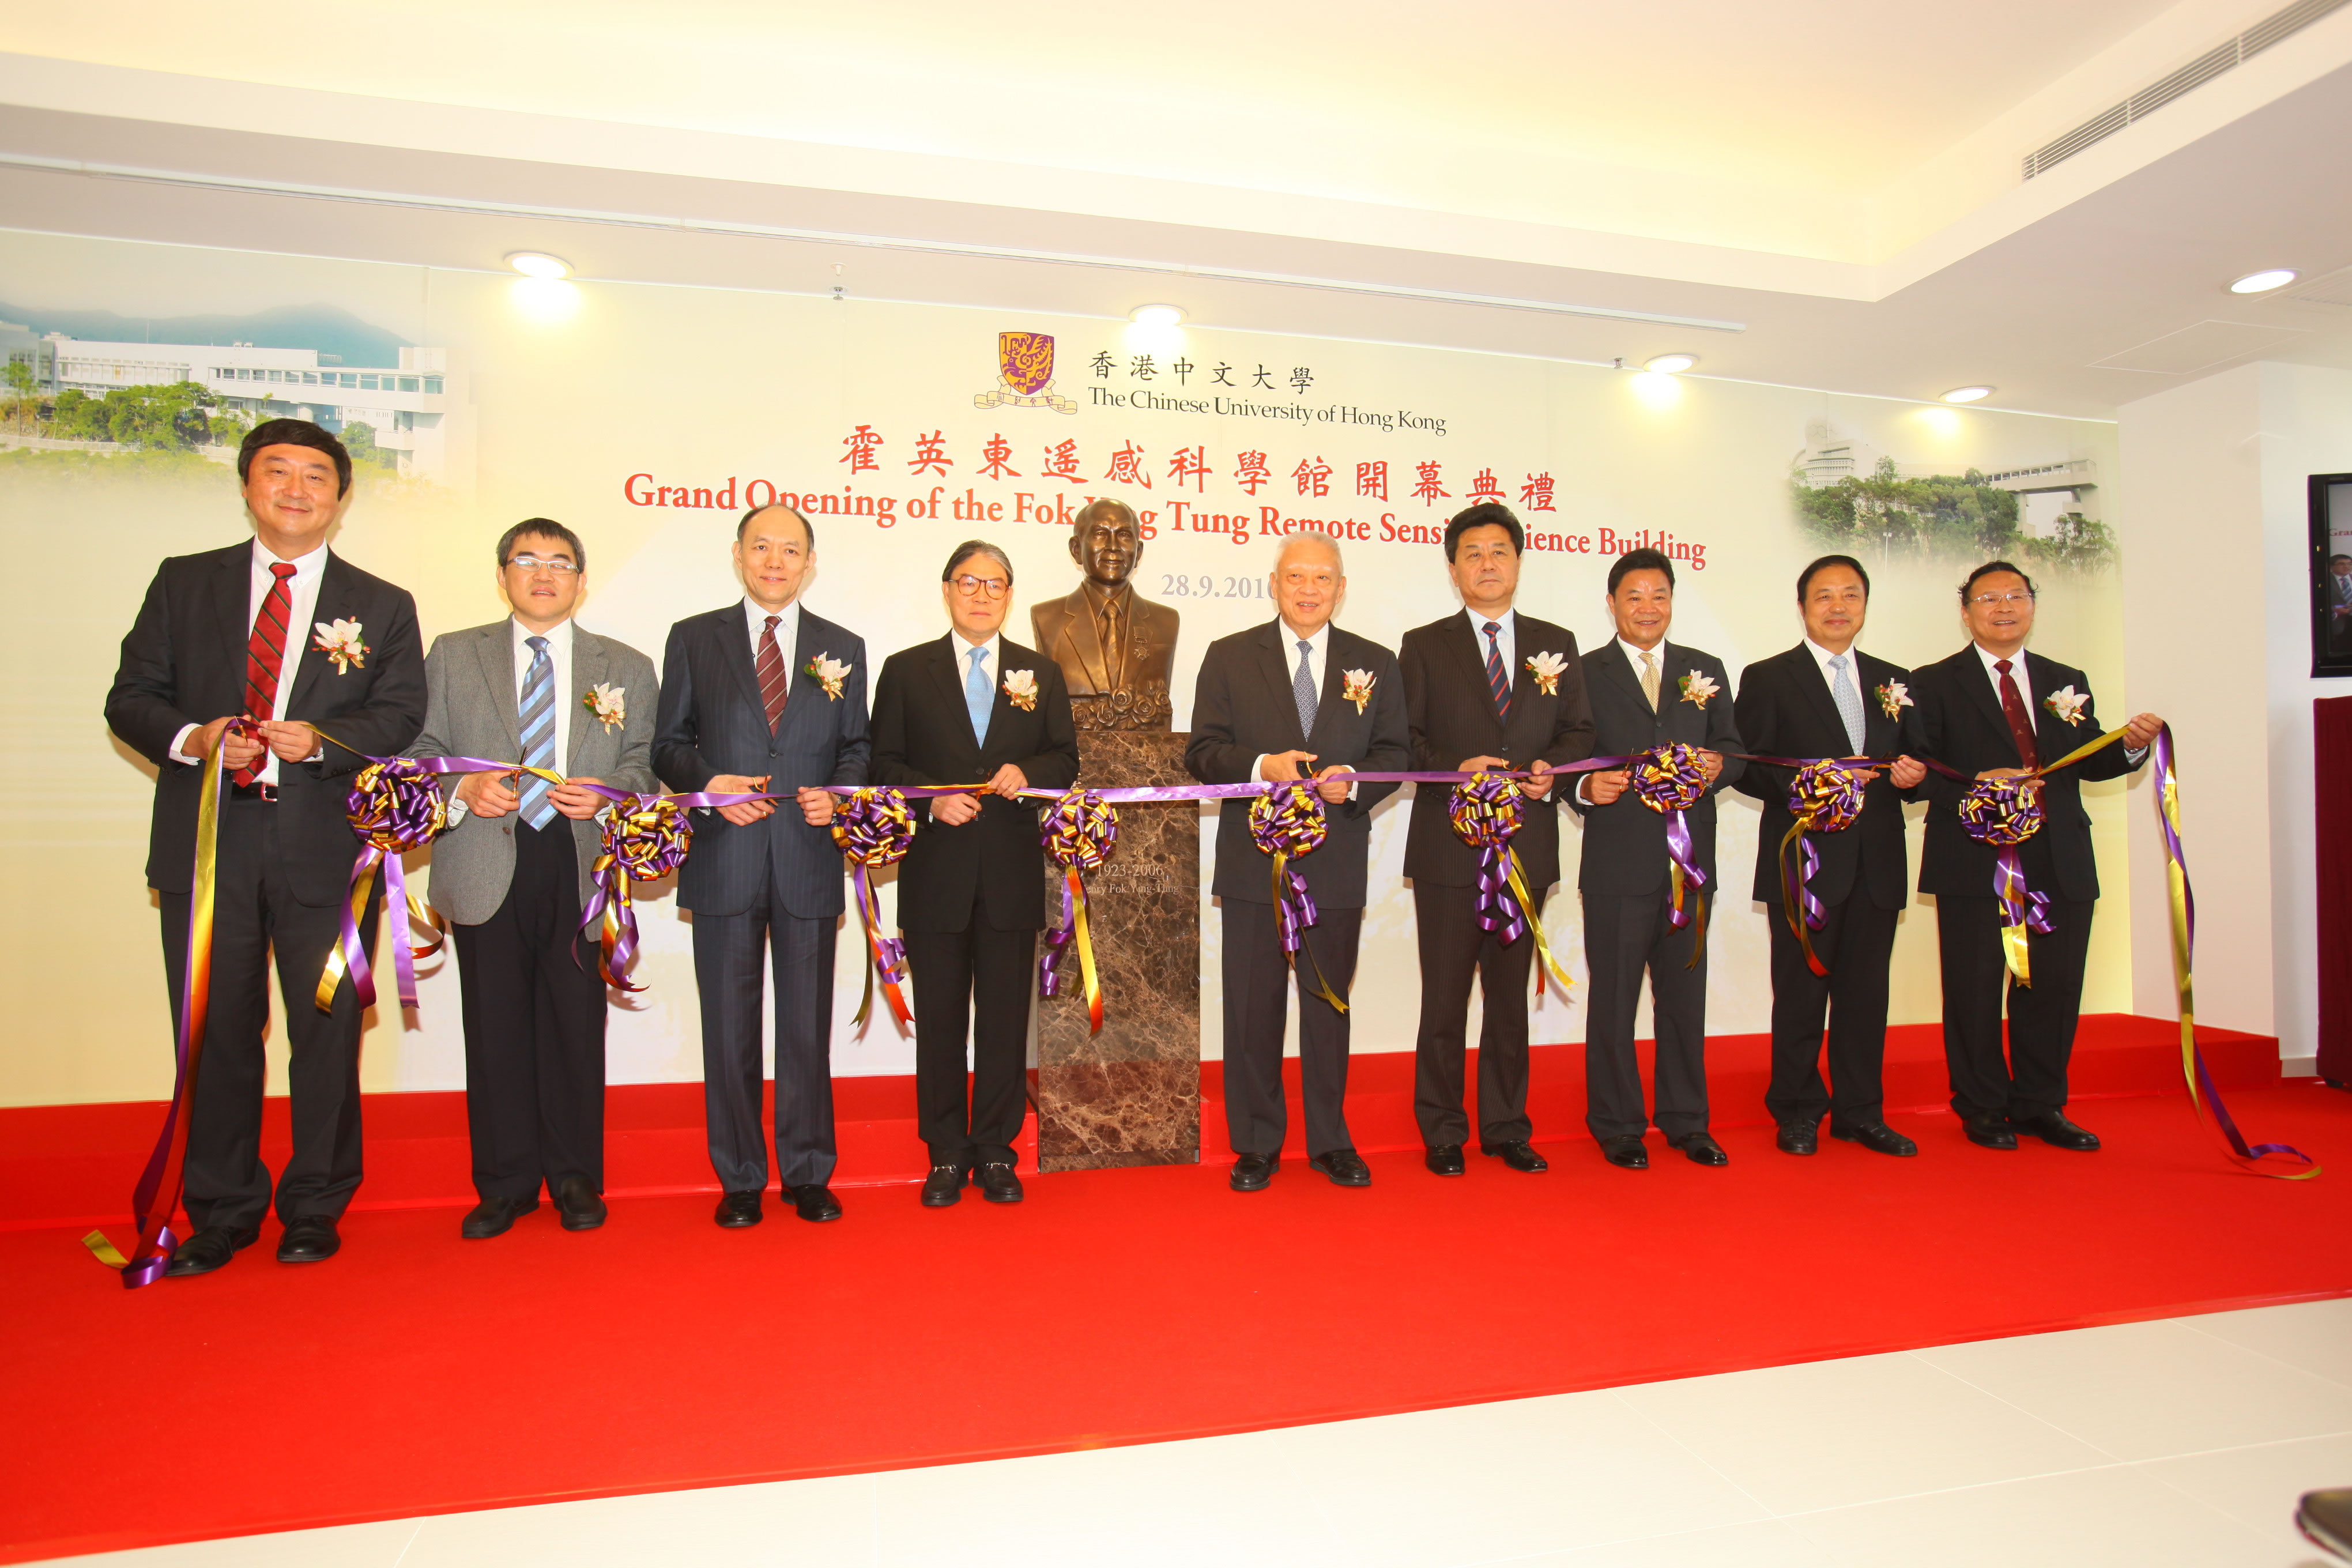 CUHK Fok Ying Tung Remote Sensing Science Building officially opens